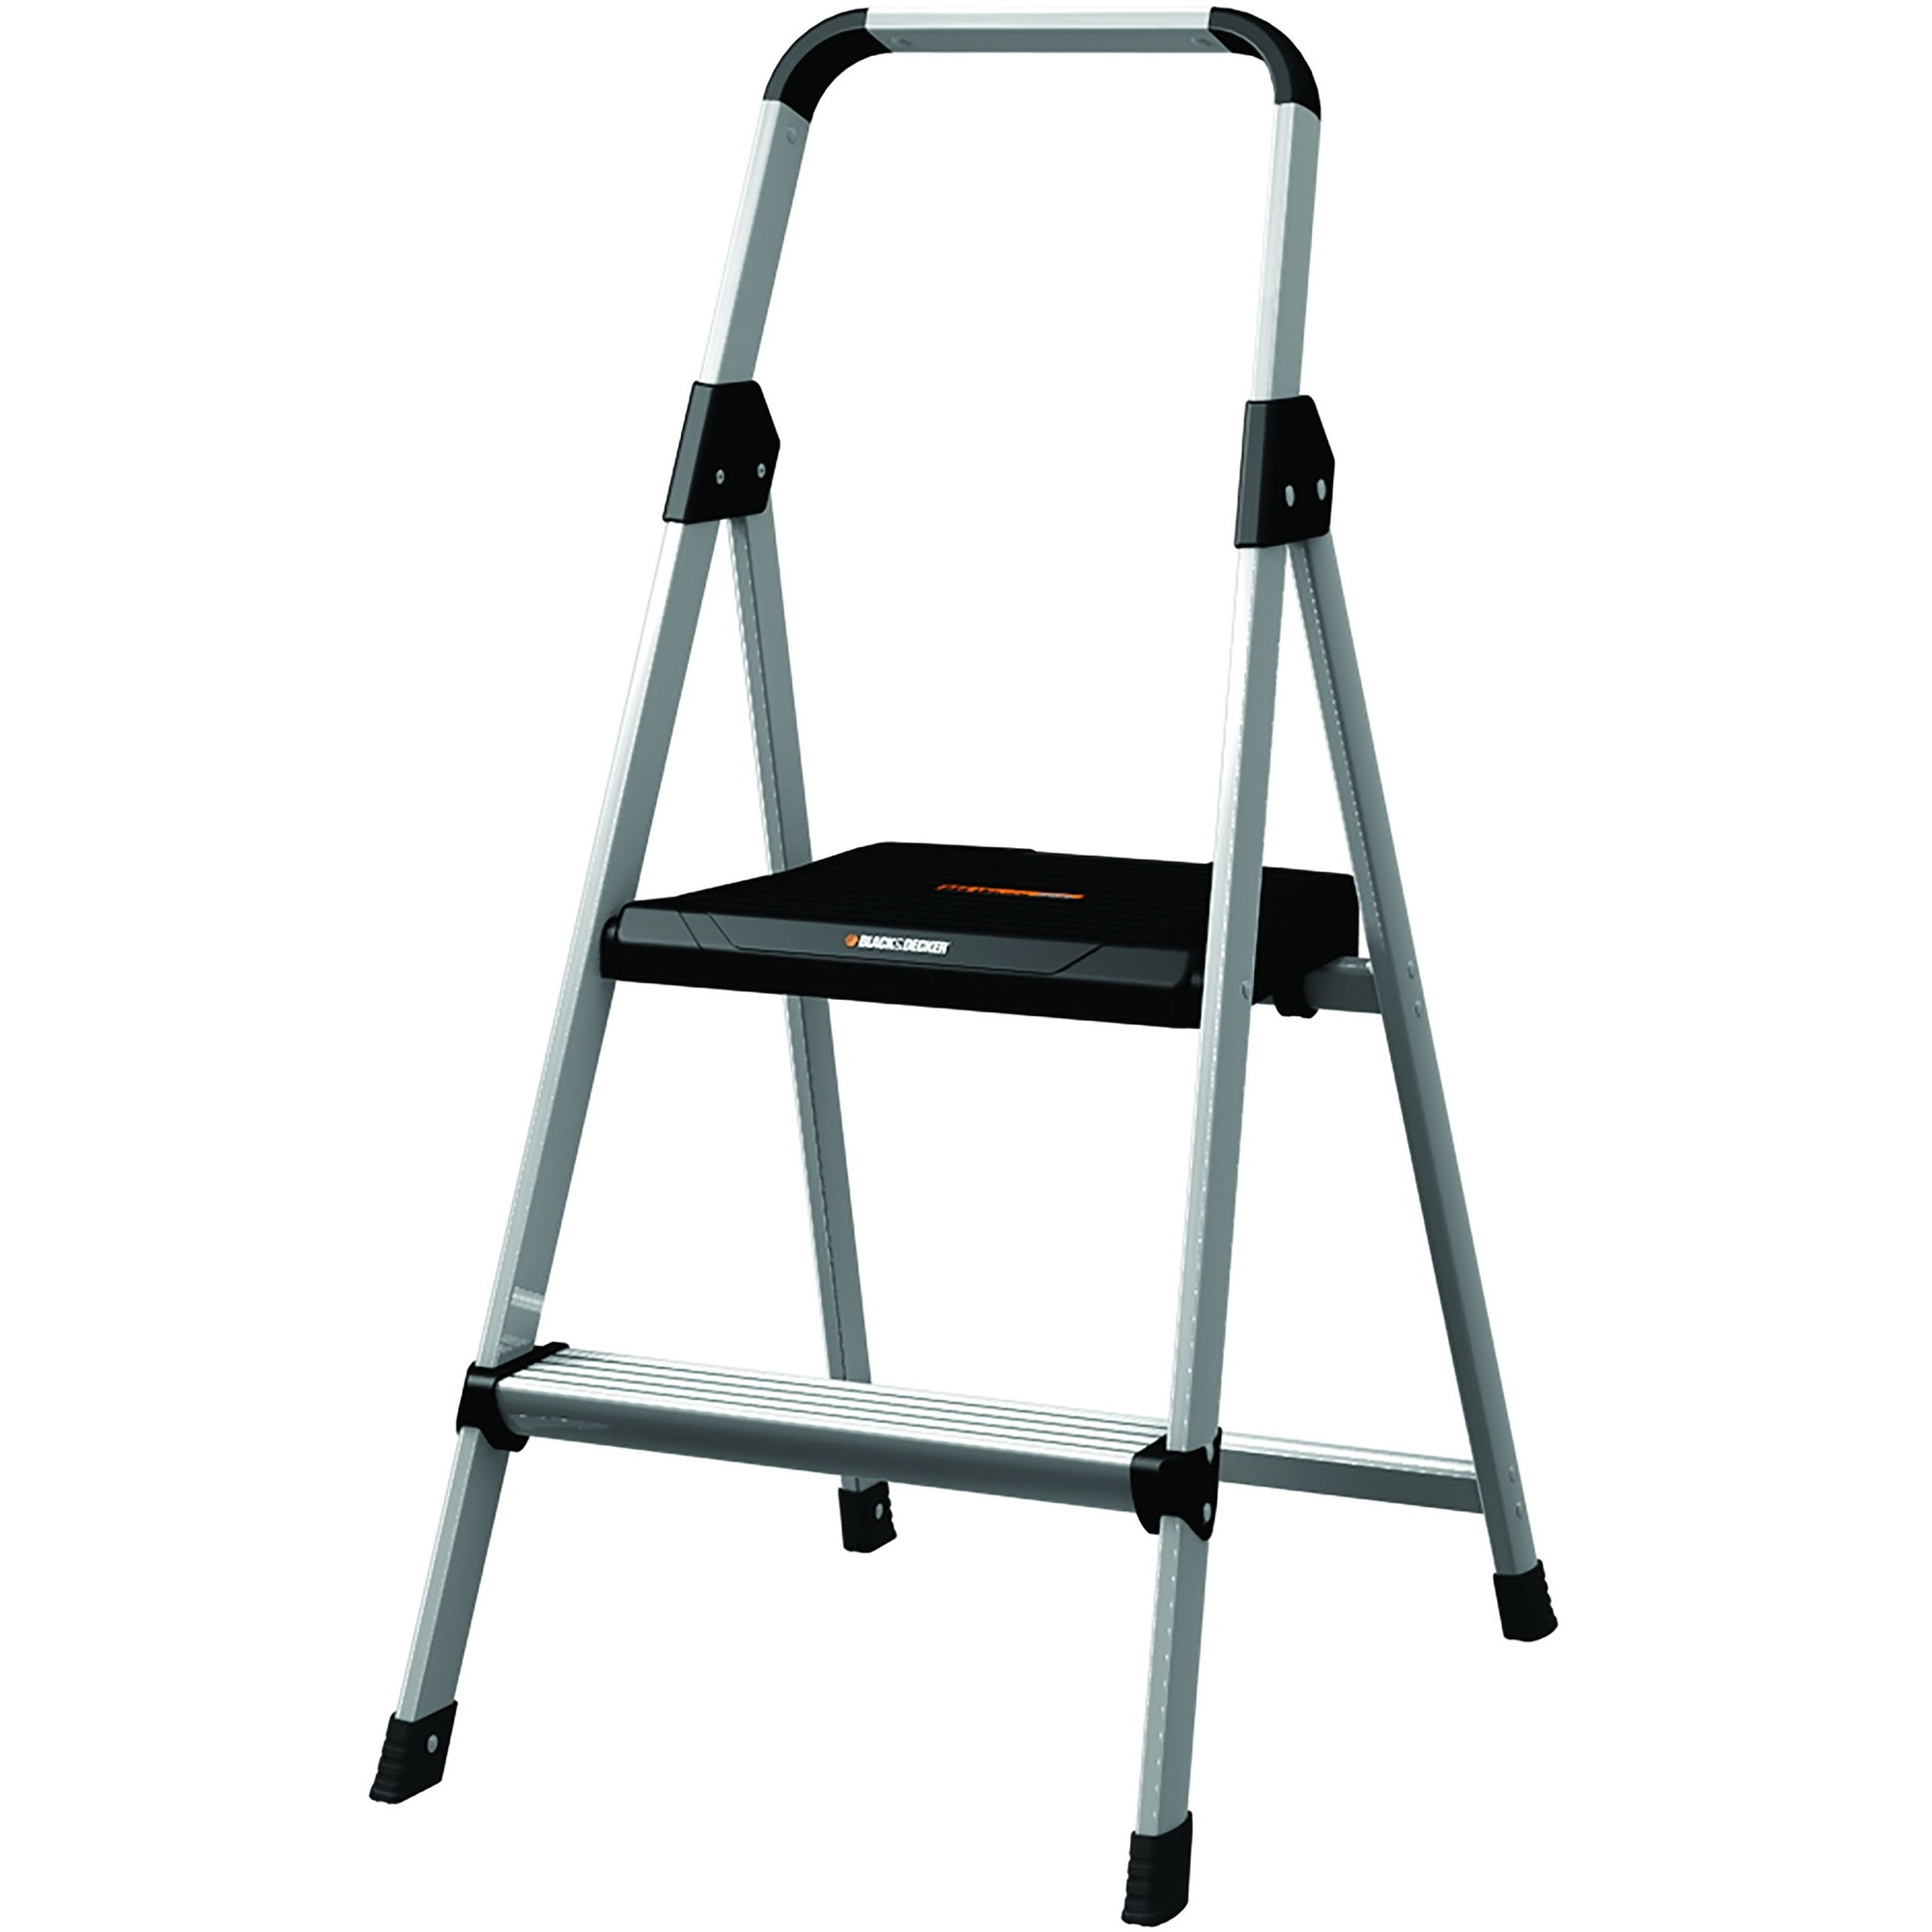 Groovy Louisville Ladder Inc Louisville 2 Steel Type Ii Step File File File Stool 2 Step File File File 225 Lb Load Capacity 18 5 X 24 X 38 5 Inzonedesignstudio Interior Chair Design Inzonedesignstudiocom